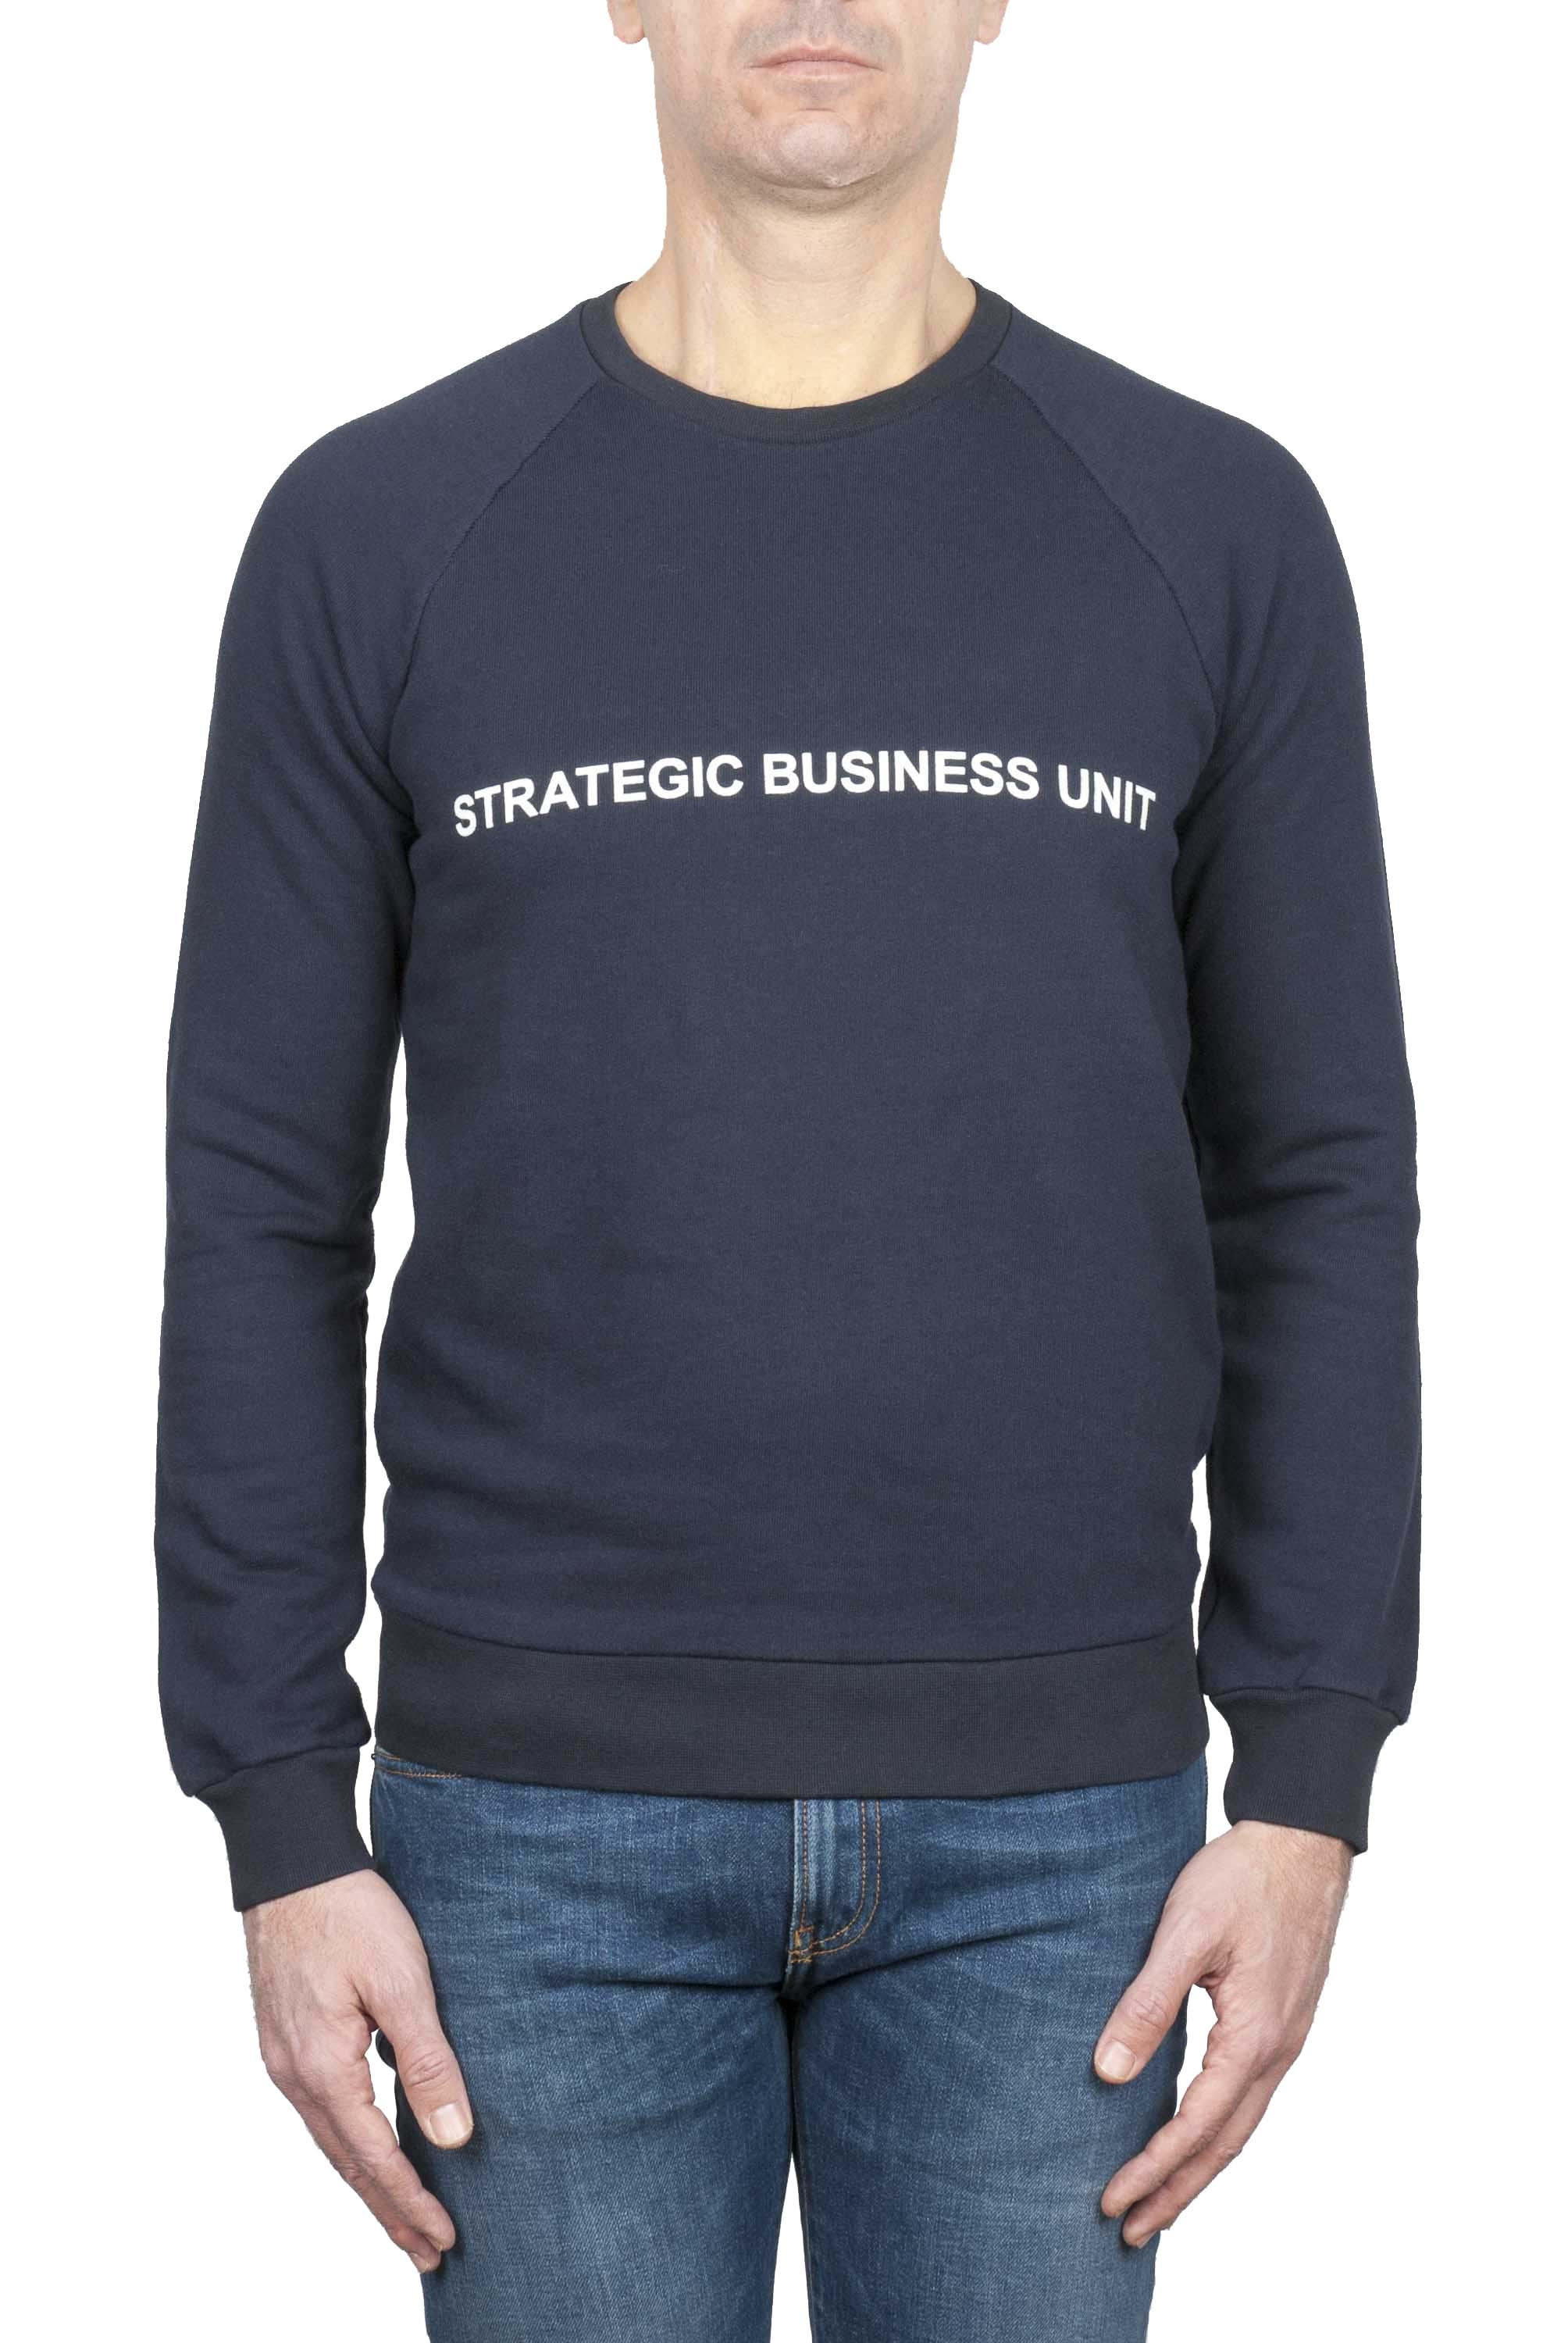 SBU 01466 Felpa girocollo Strategic Business Unit con logo stampato 01